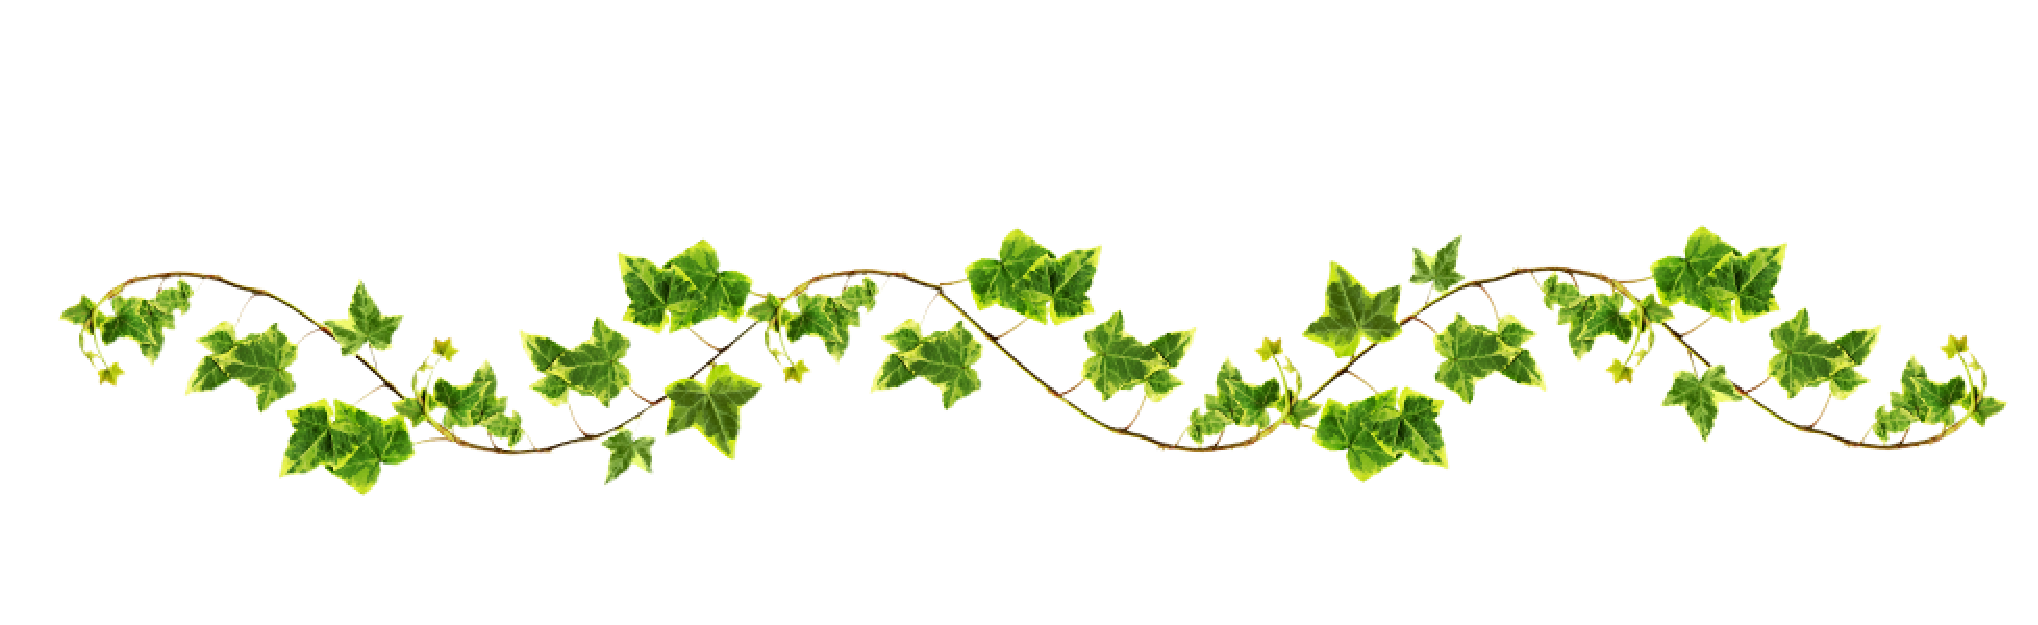 Vine with maple like. Vines png clip art transparent